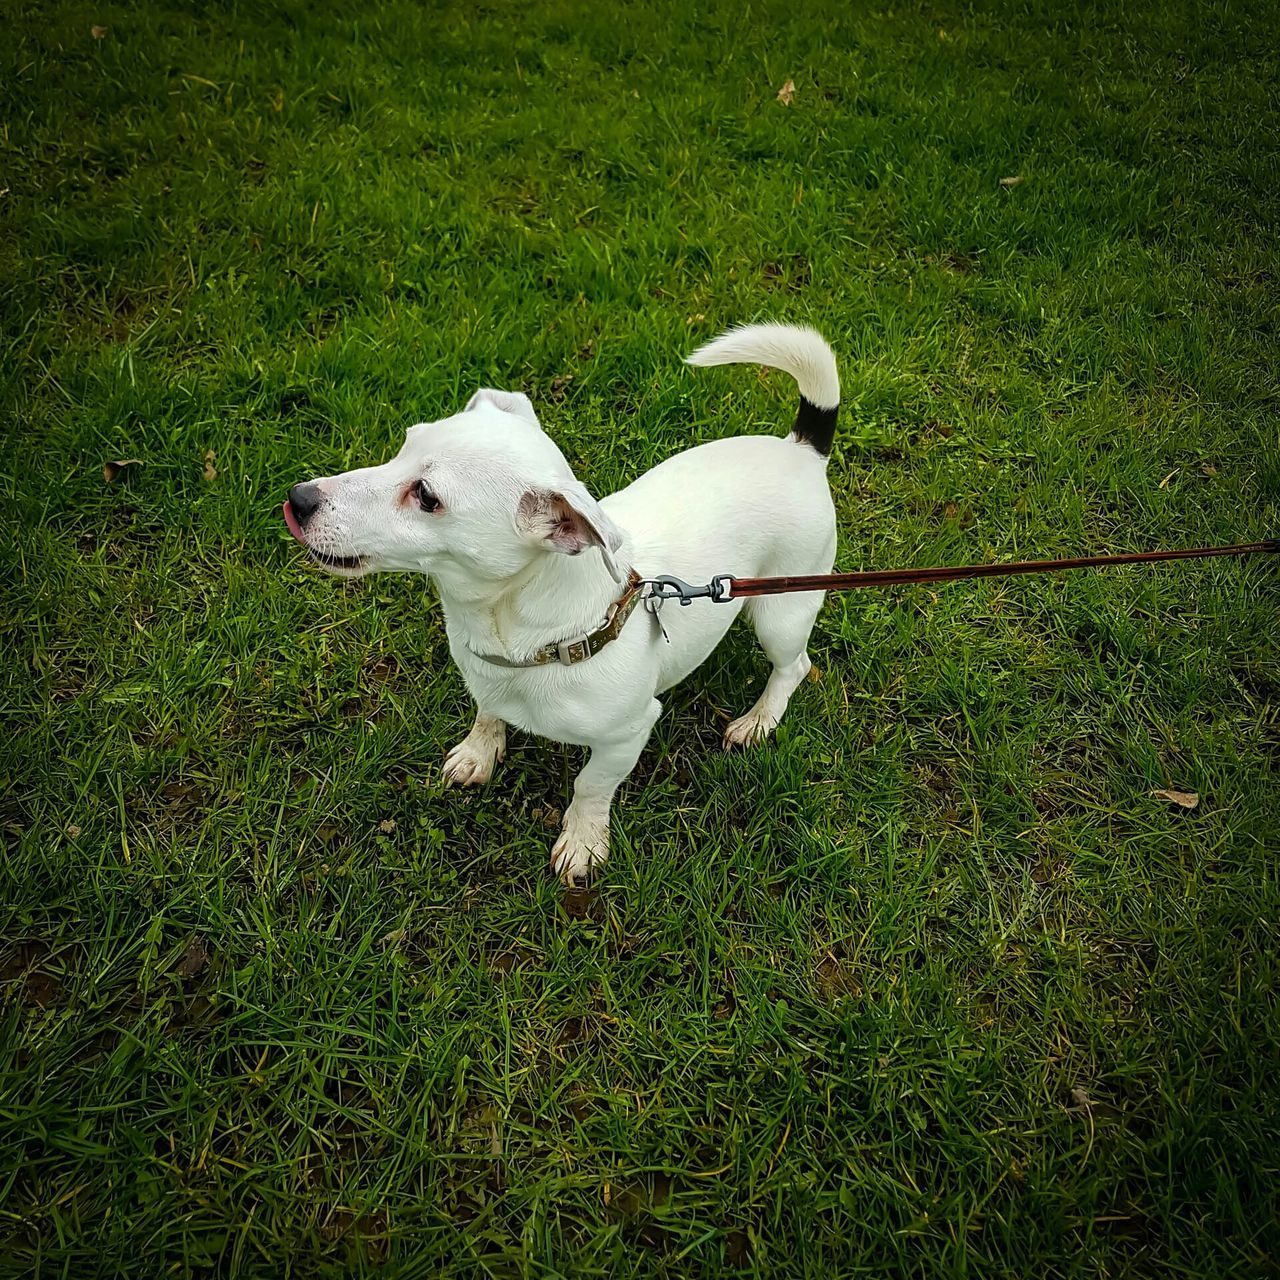 dog, pets, domestic animals, grass, animal themes, mammal, one animal, high angle view, white color, pet leash, outdoors, pet collar, day, growth, standing, no people, full length, nature